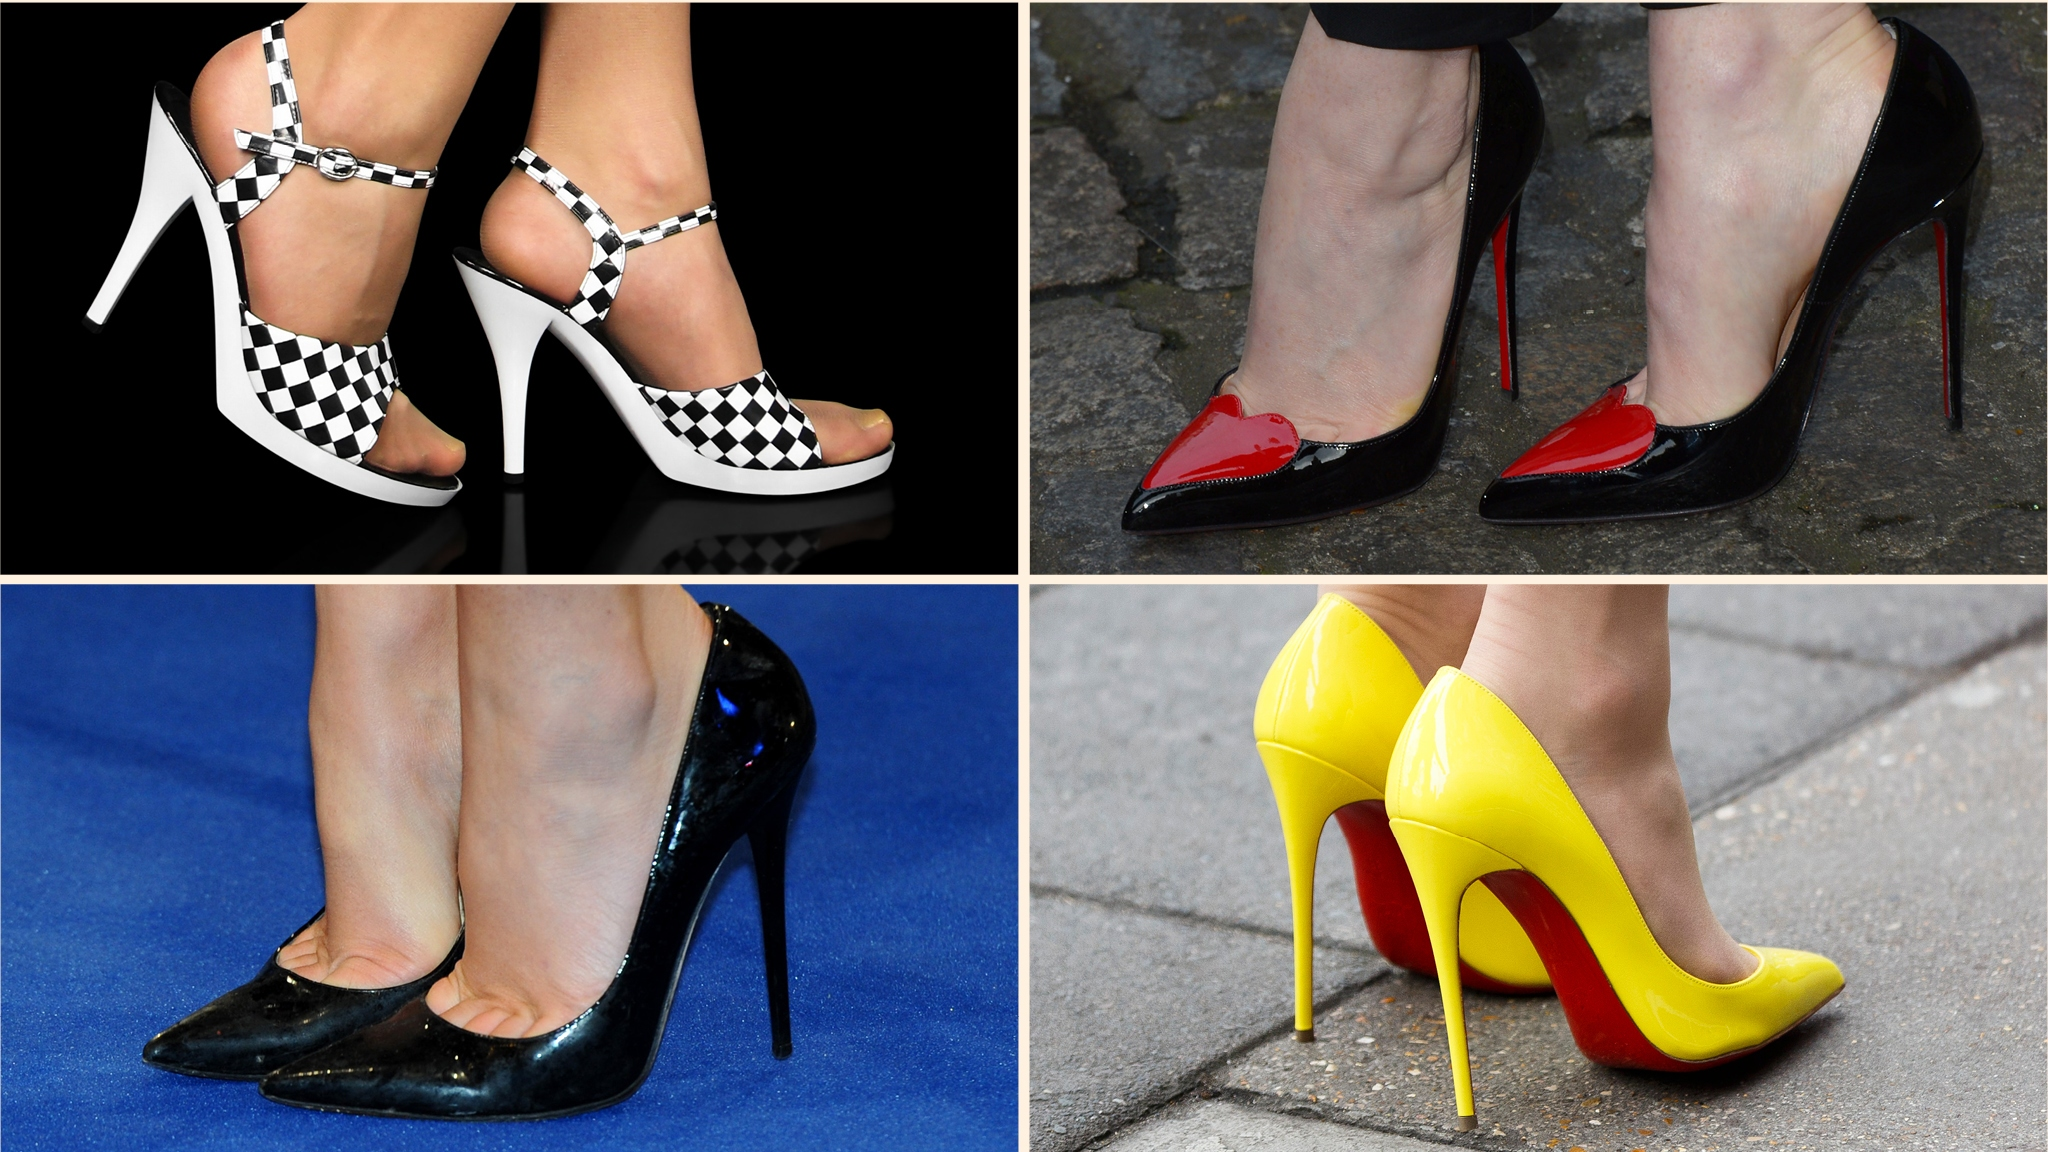 The high heels dress code is stamped on | Financial Times